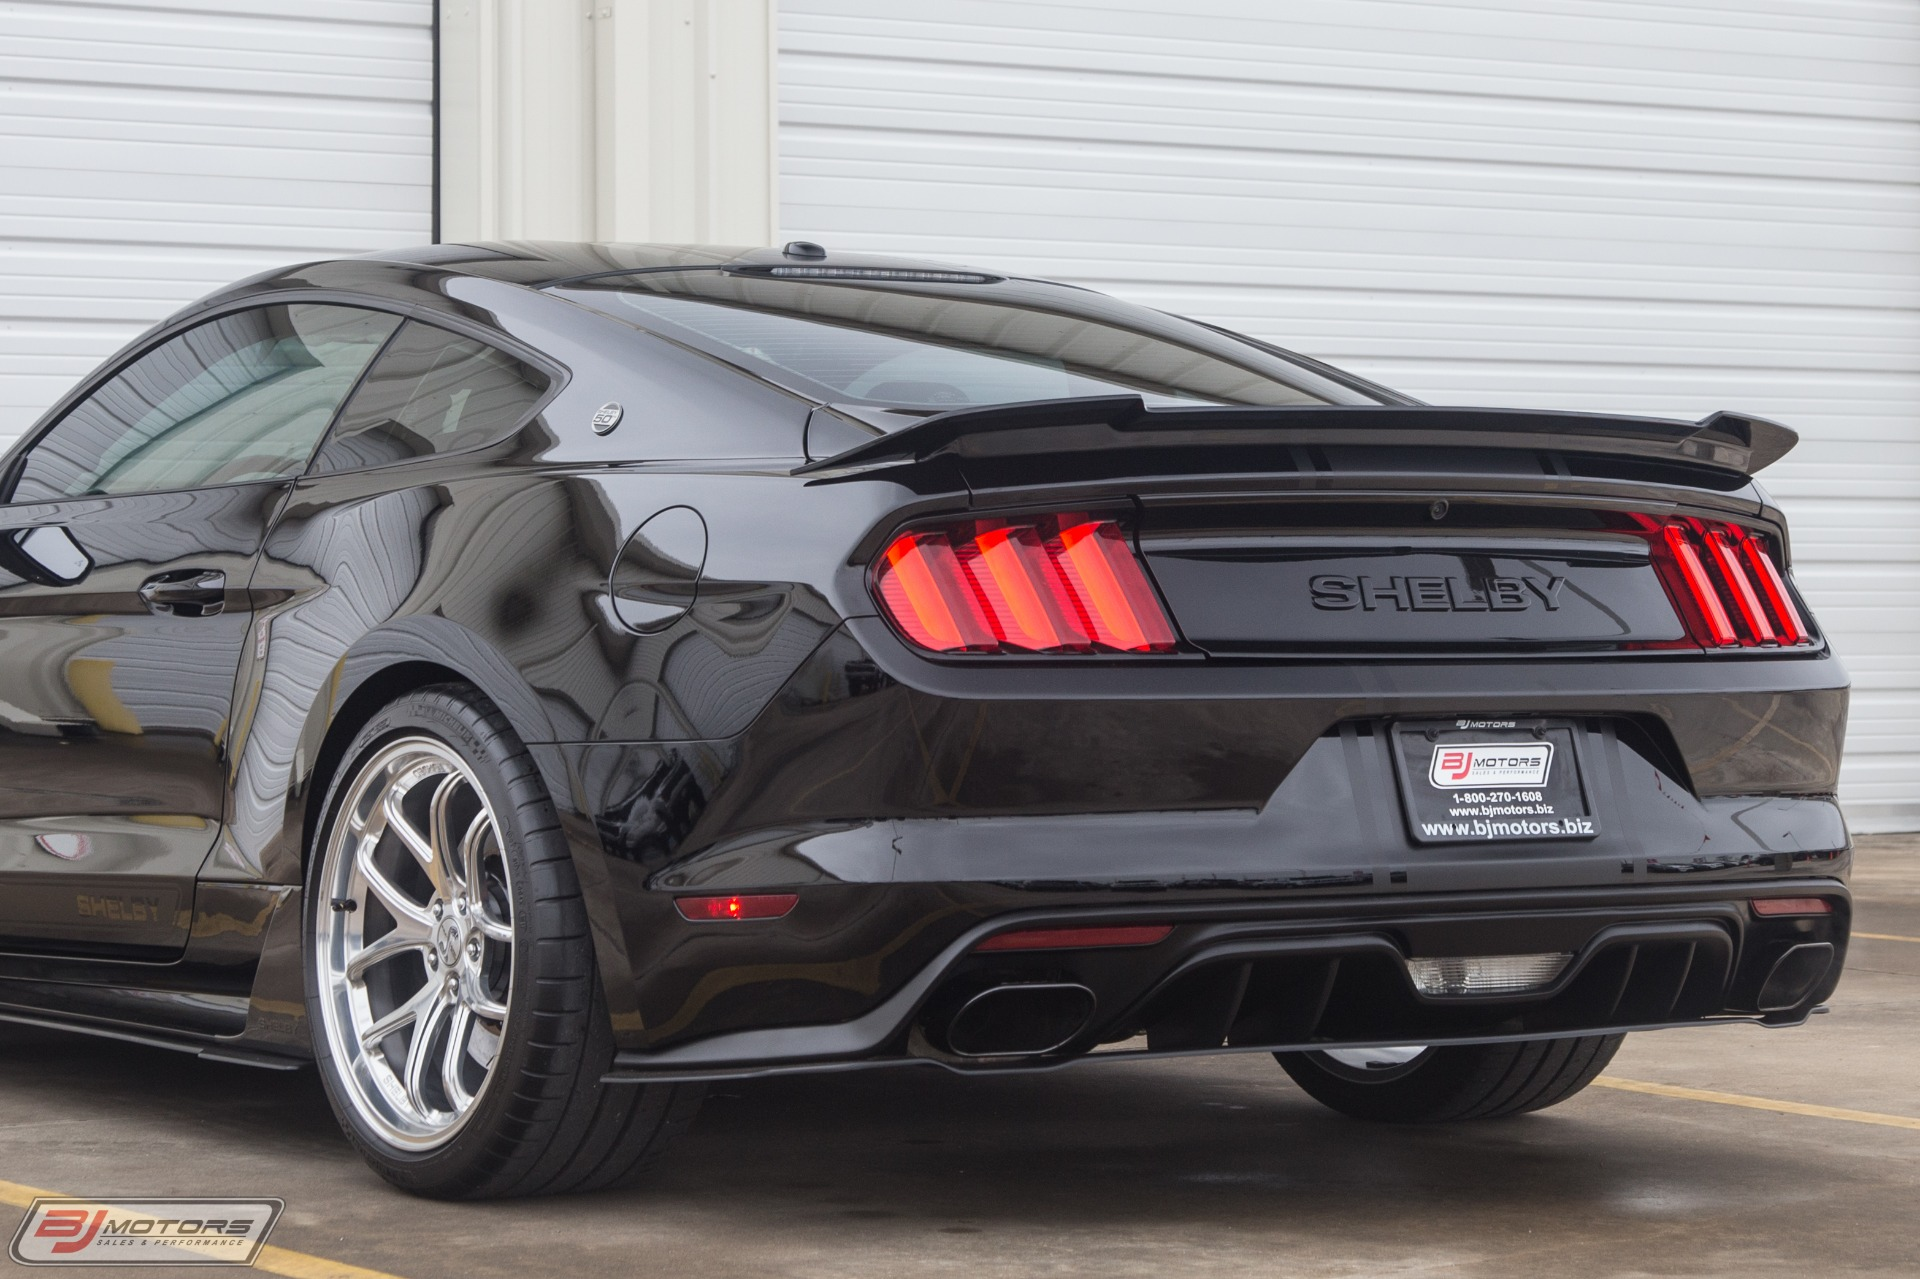 2017 Mustang Gt For Sale >> Used 2017 Ford Mustang Gt Shelby Super Snake 750hp For Sale